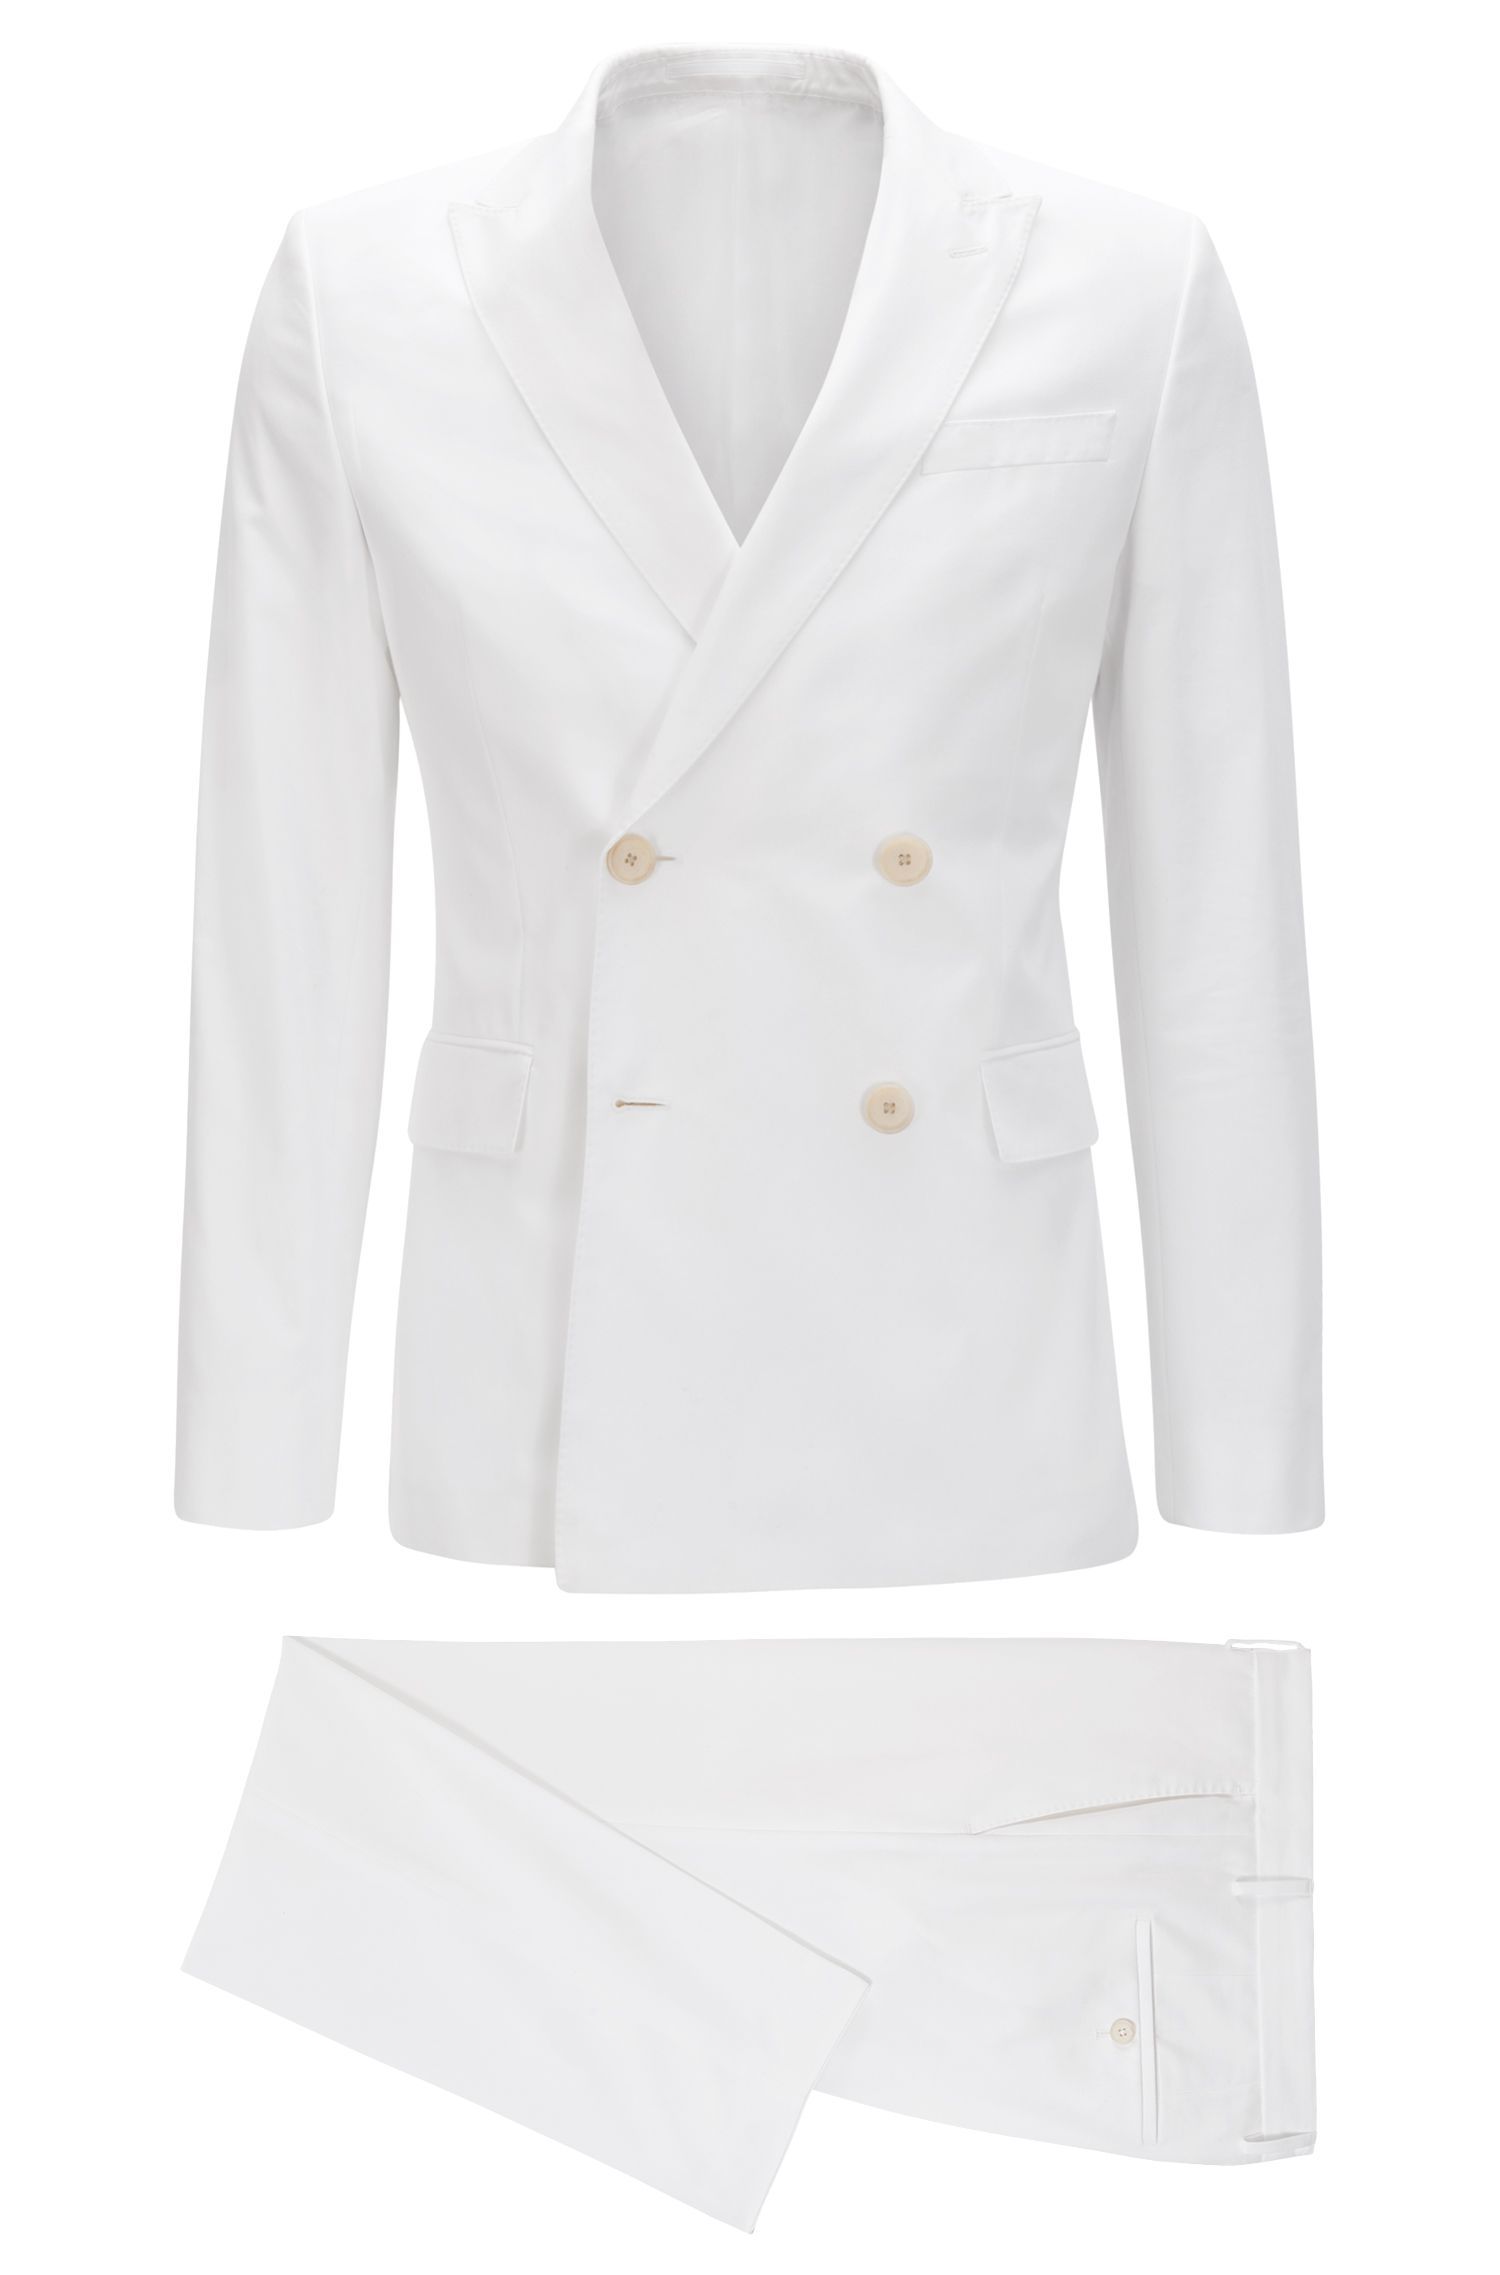 Italian Cotton Double-Breasted Suit, Slim Fit | Nami/Ben , White